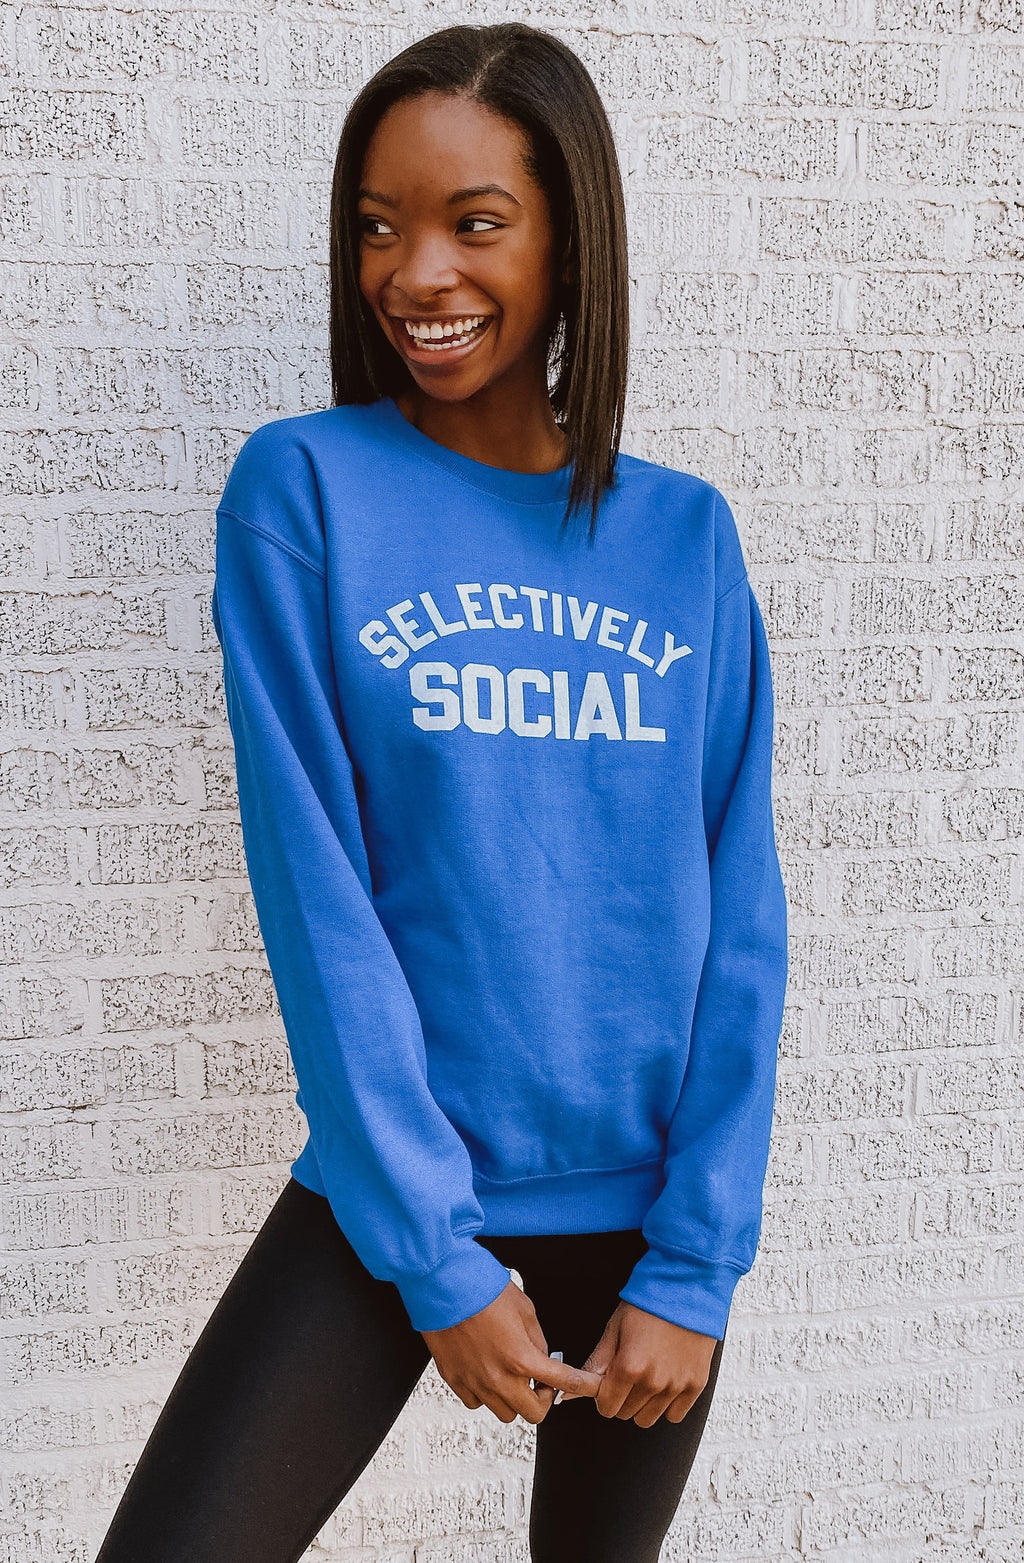 SELECTIVELY SOCIAL GRAPHIC SWEATSHIRT